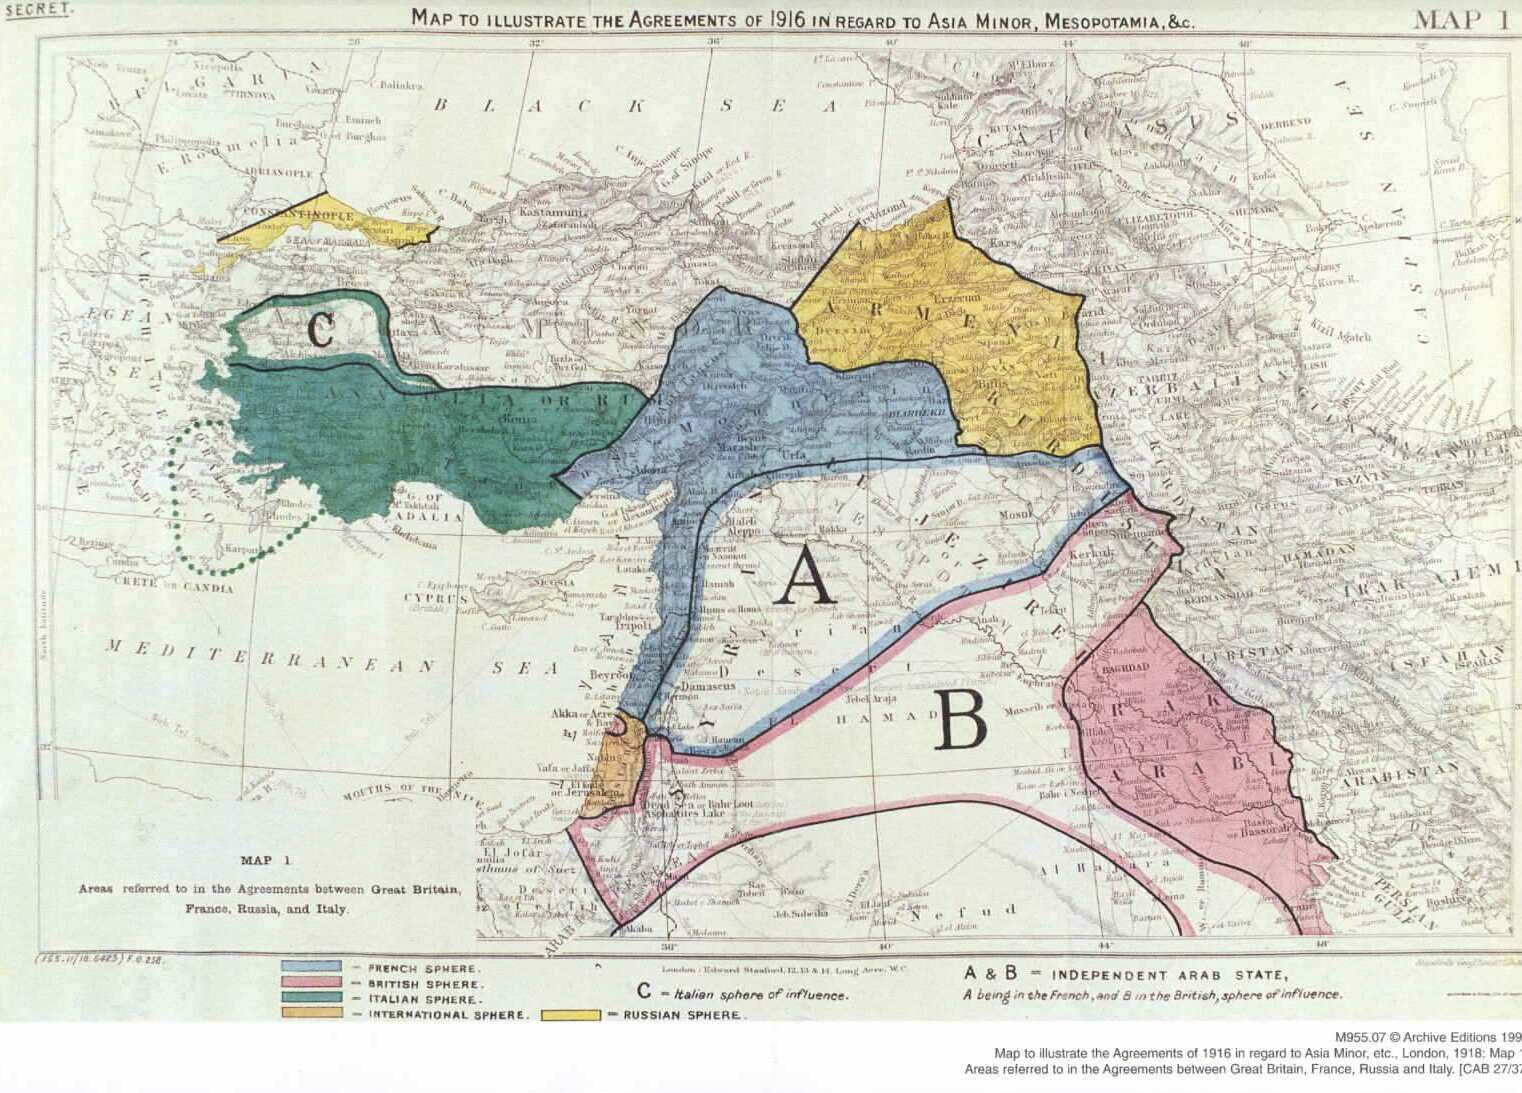 Map to illustrate the agreements of 1916 between great britain a map of map of the sykespicot agreement showing eastern turkey in asia syria and western persia and areas of control and influence agreed between the gumiabroncs Choice Image